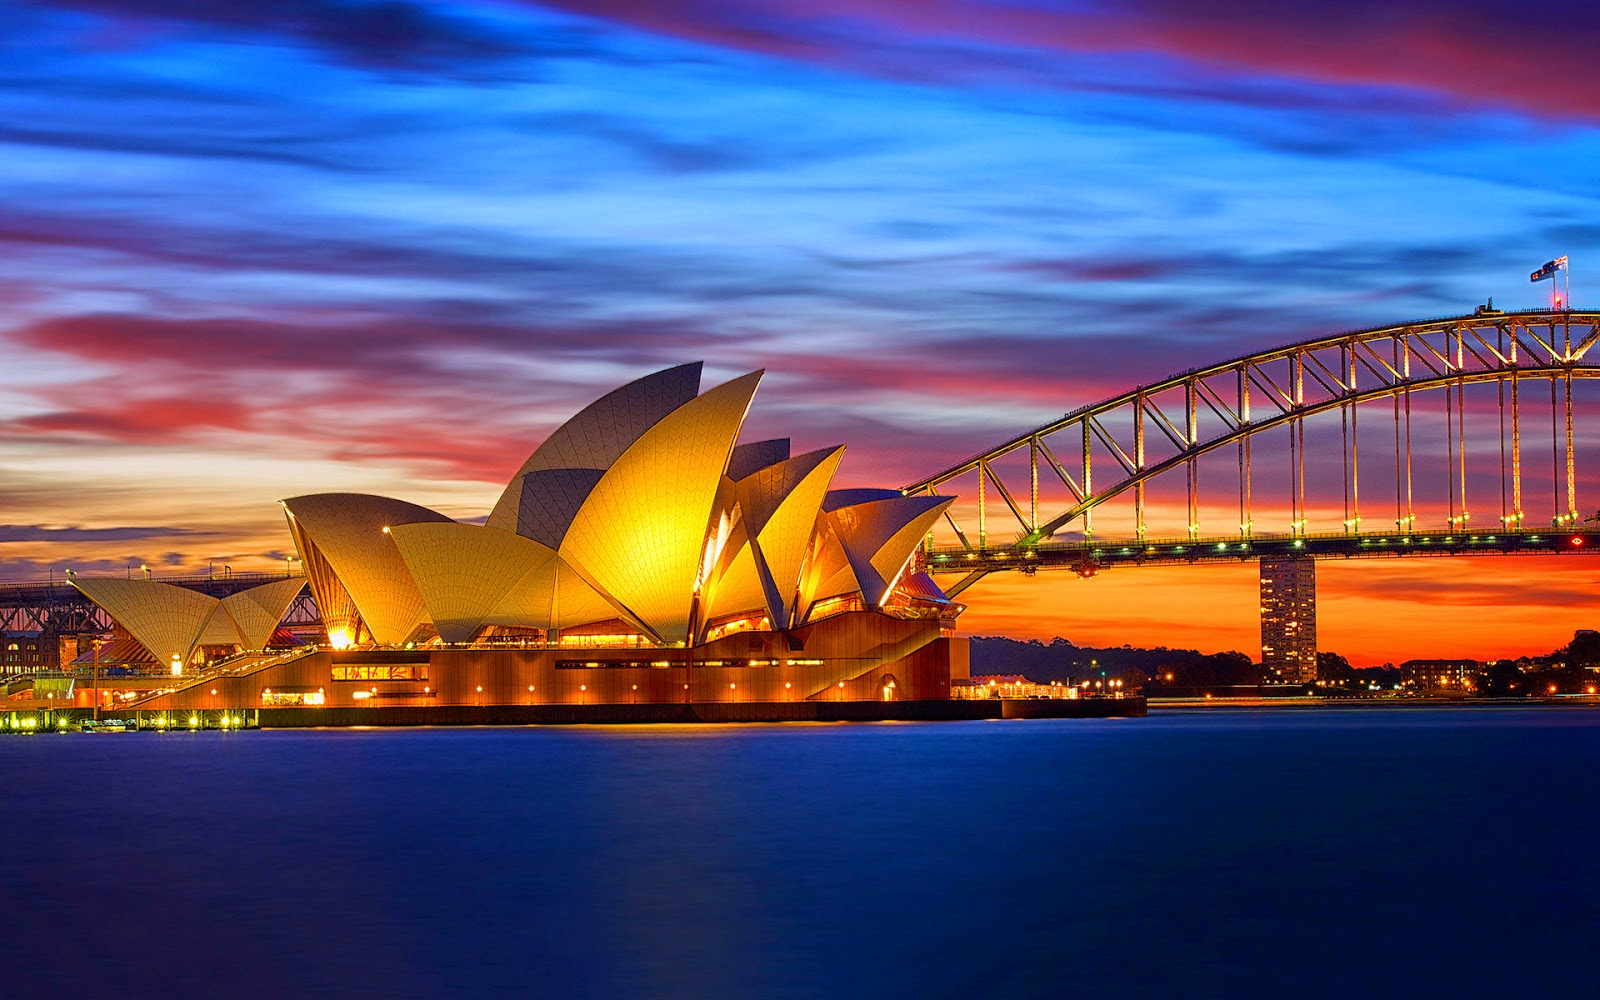 Australia Is The Most Famous And Wonders Destination It For Its Beaches Deserts Bush Outback Has Best Cities Like